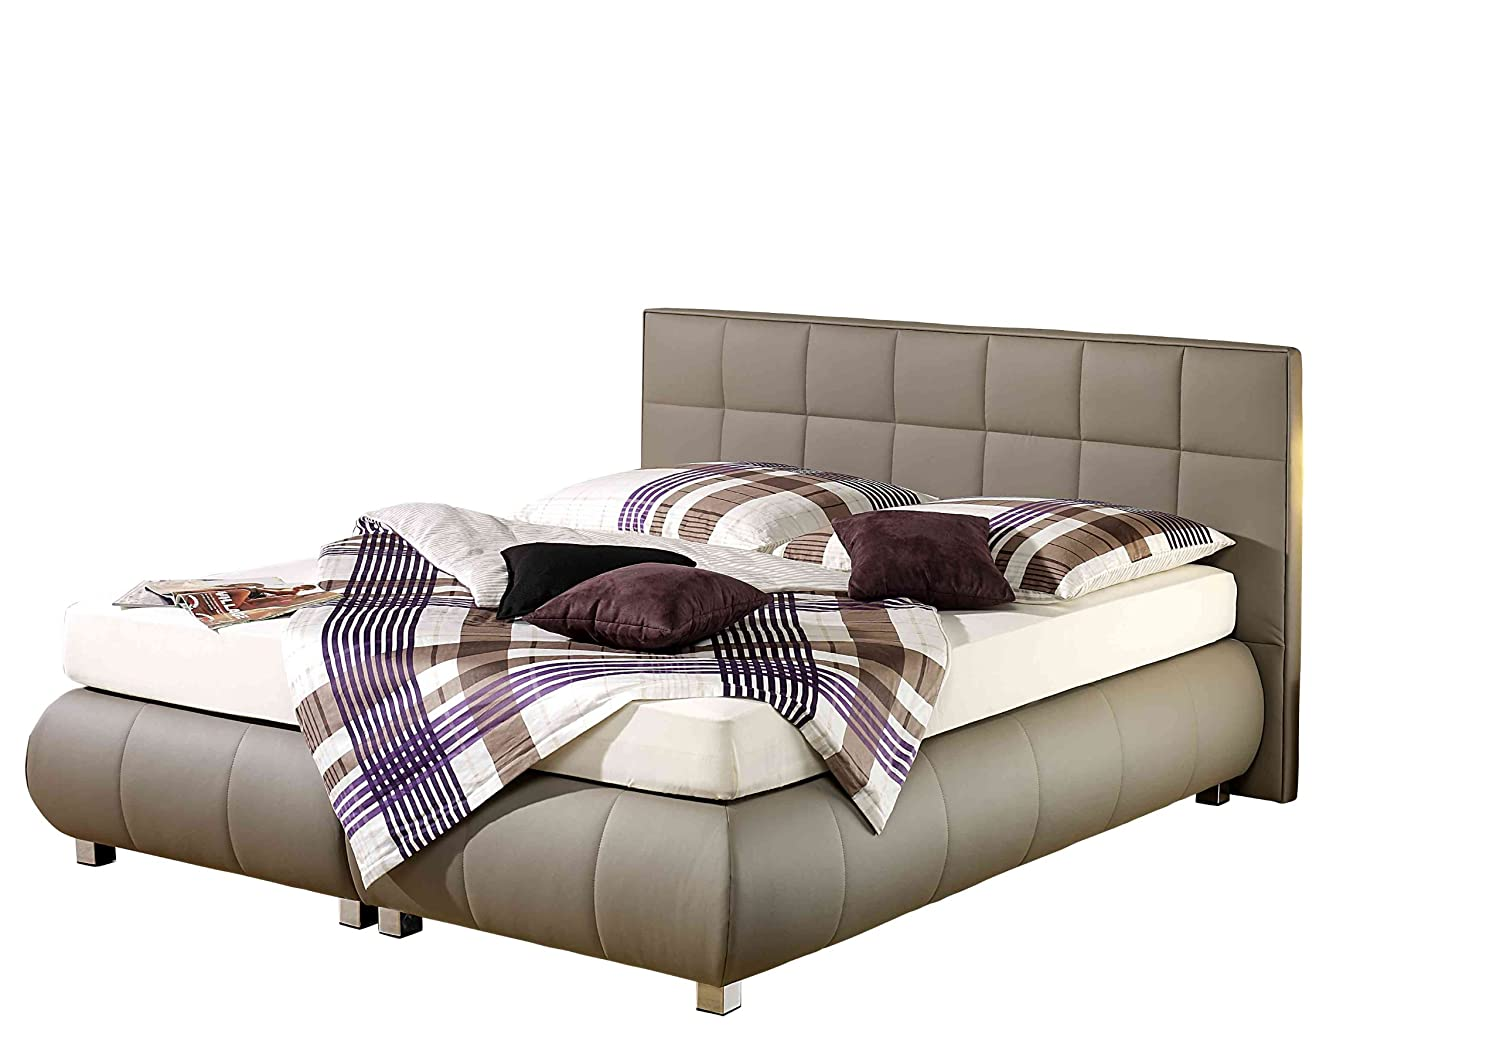 Maintal Betten 234204-4130 Boxspringbett Elias 180 x 200 cm, taupe